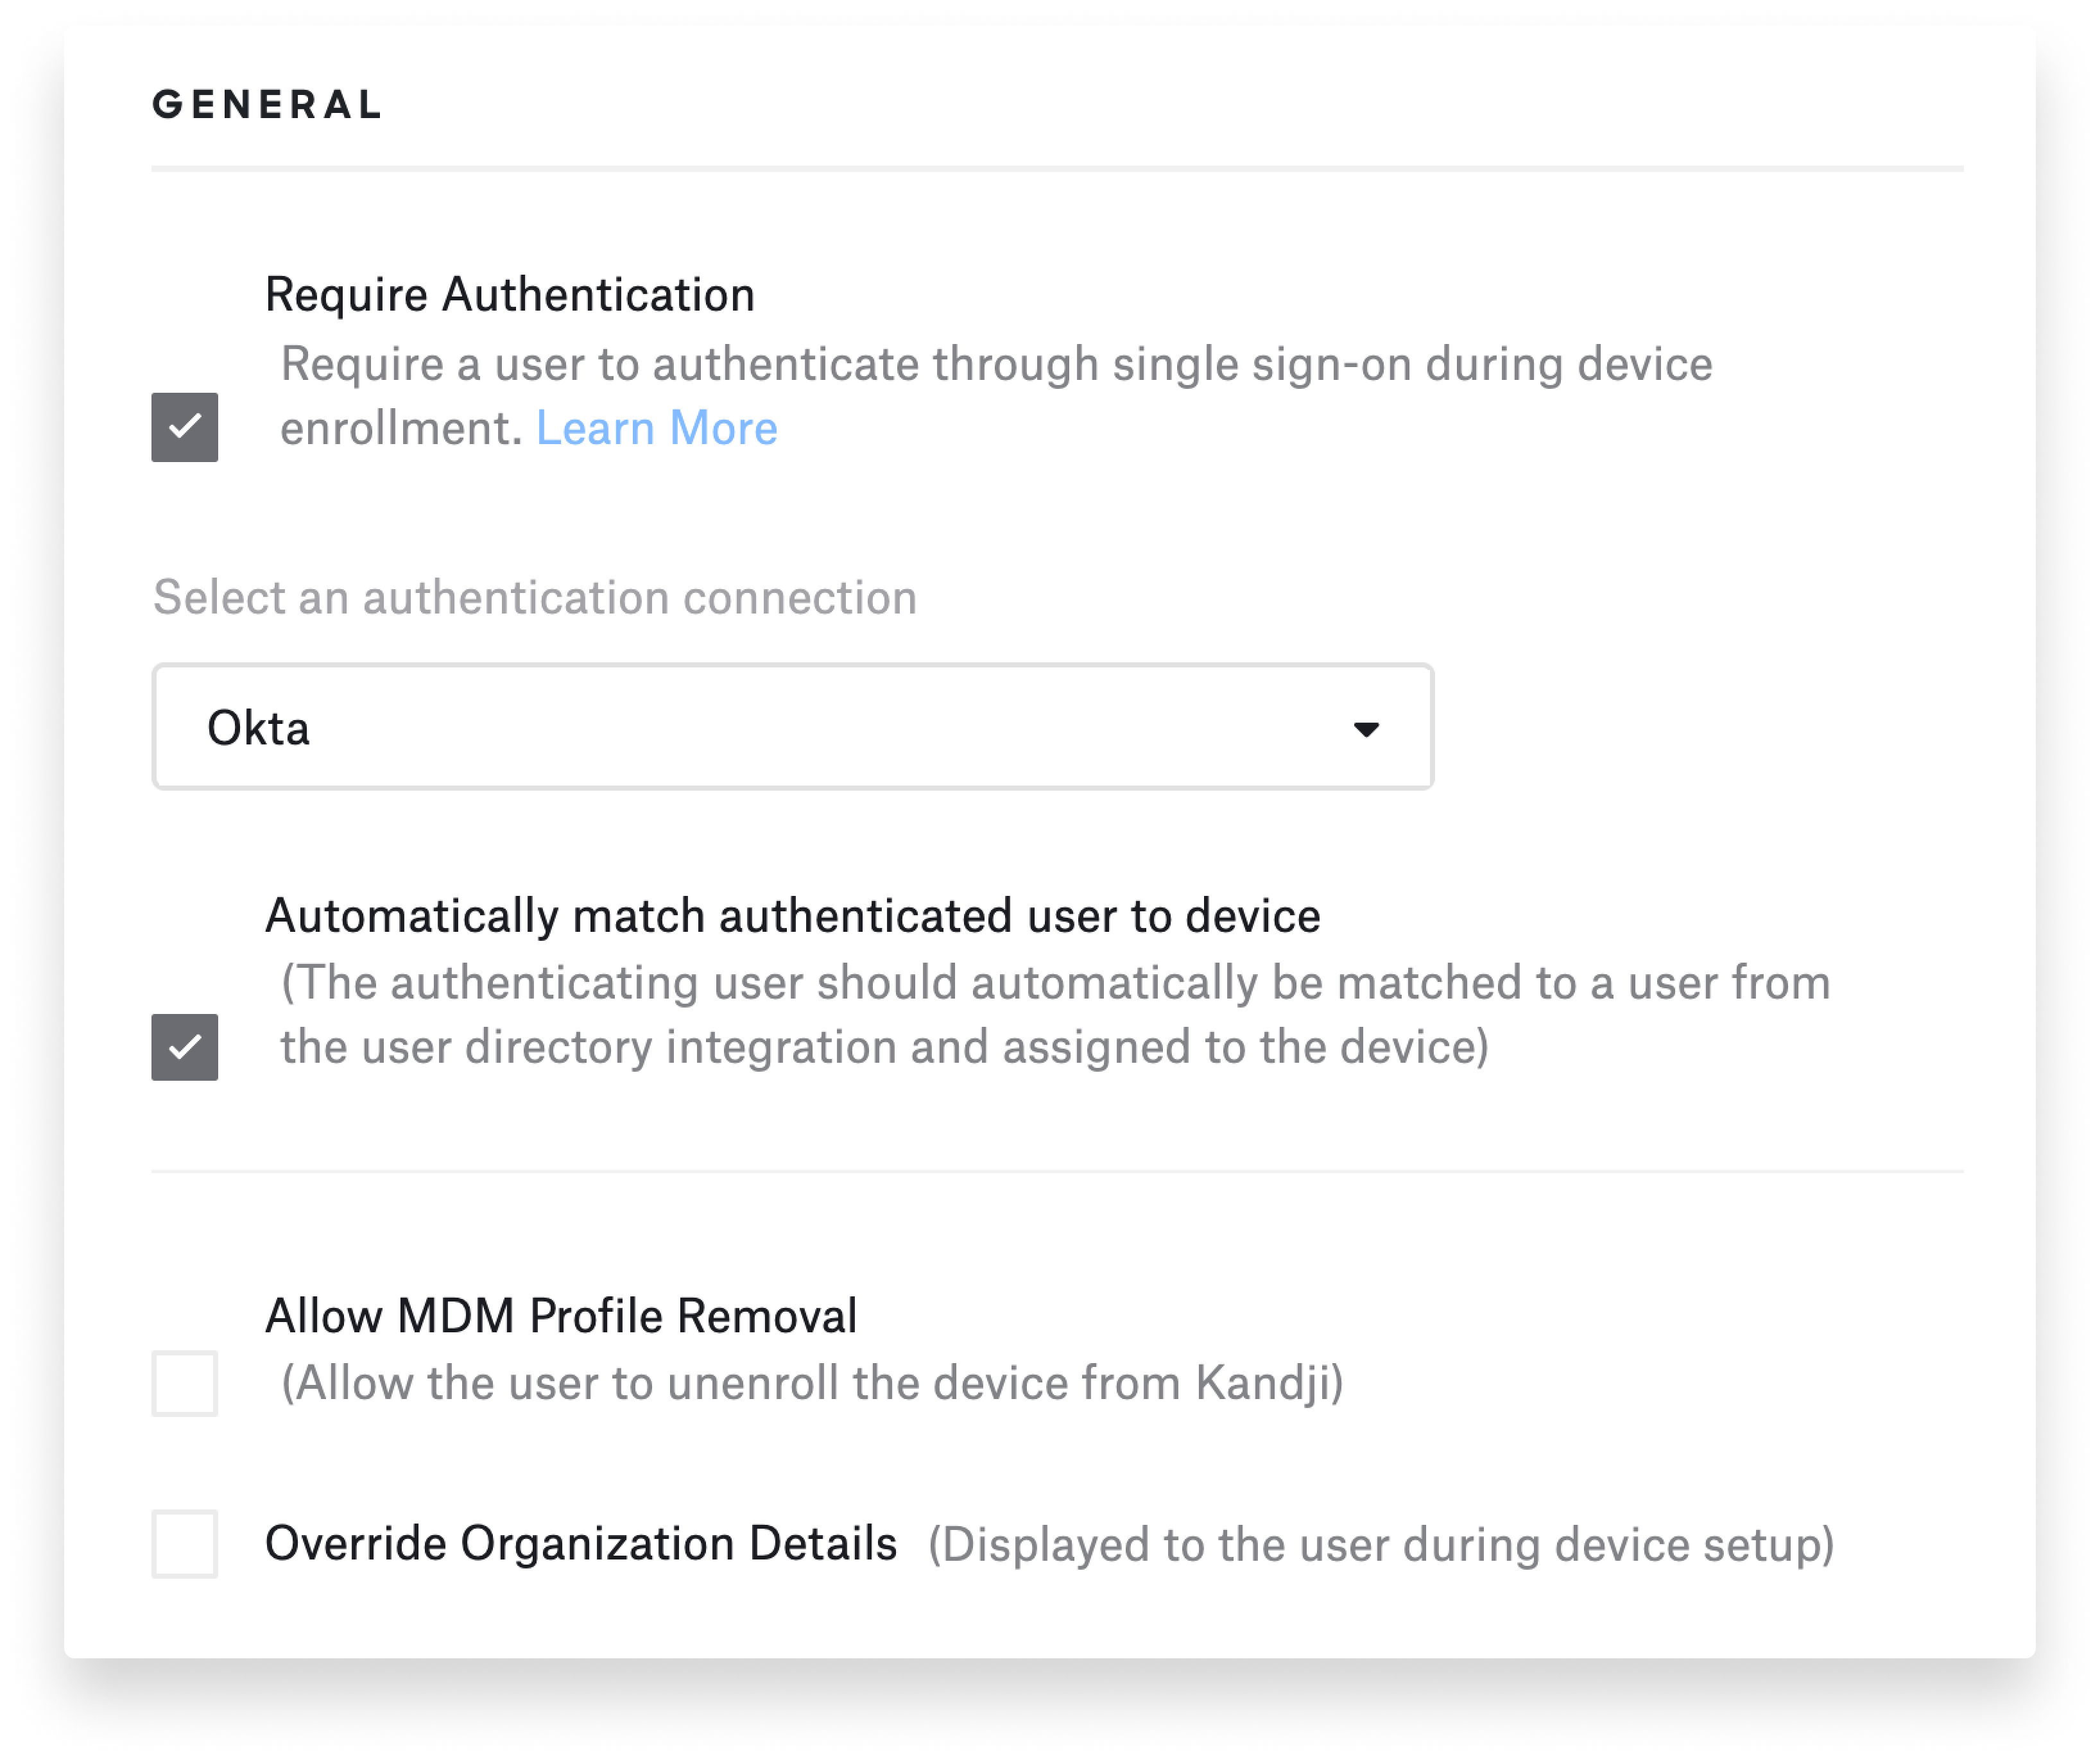 Requiring users to authenticate via SSO.